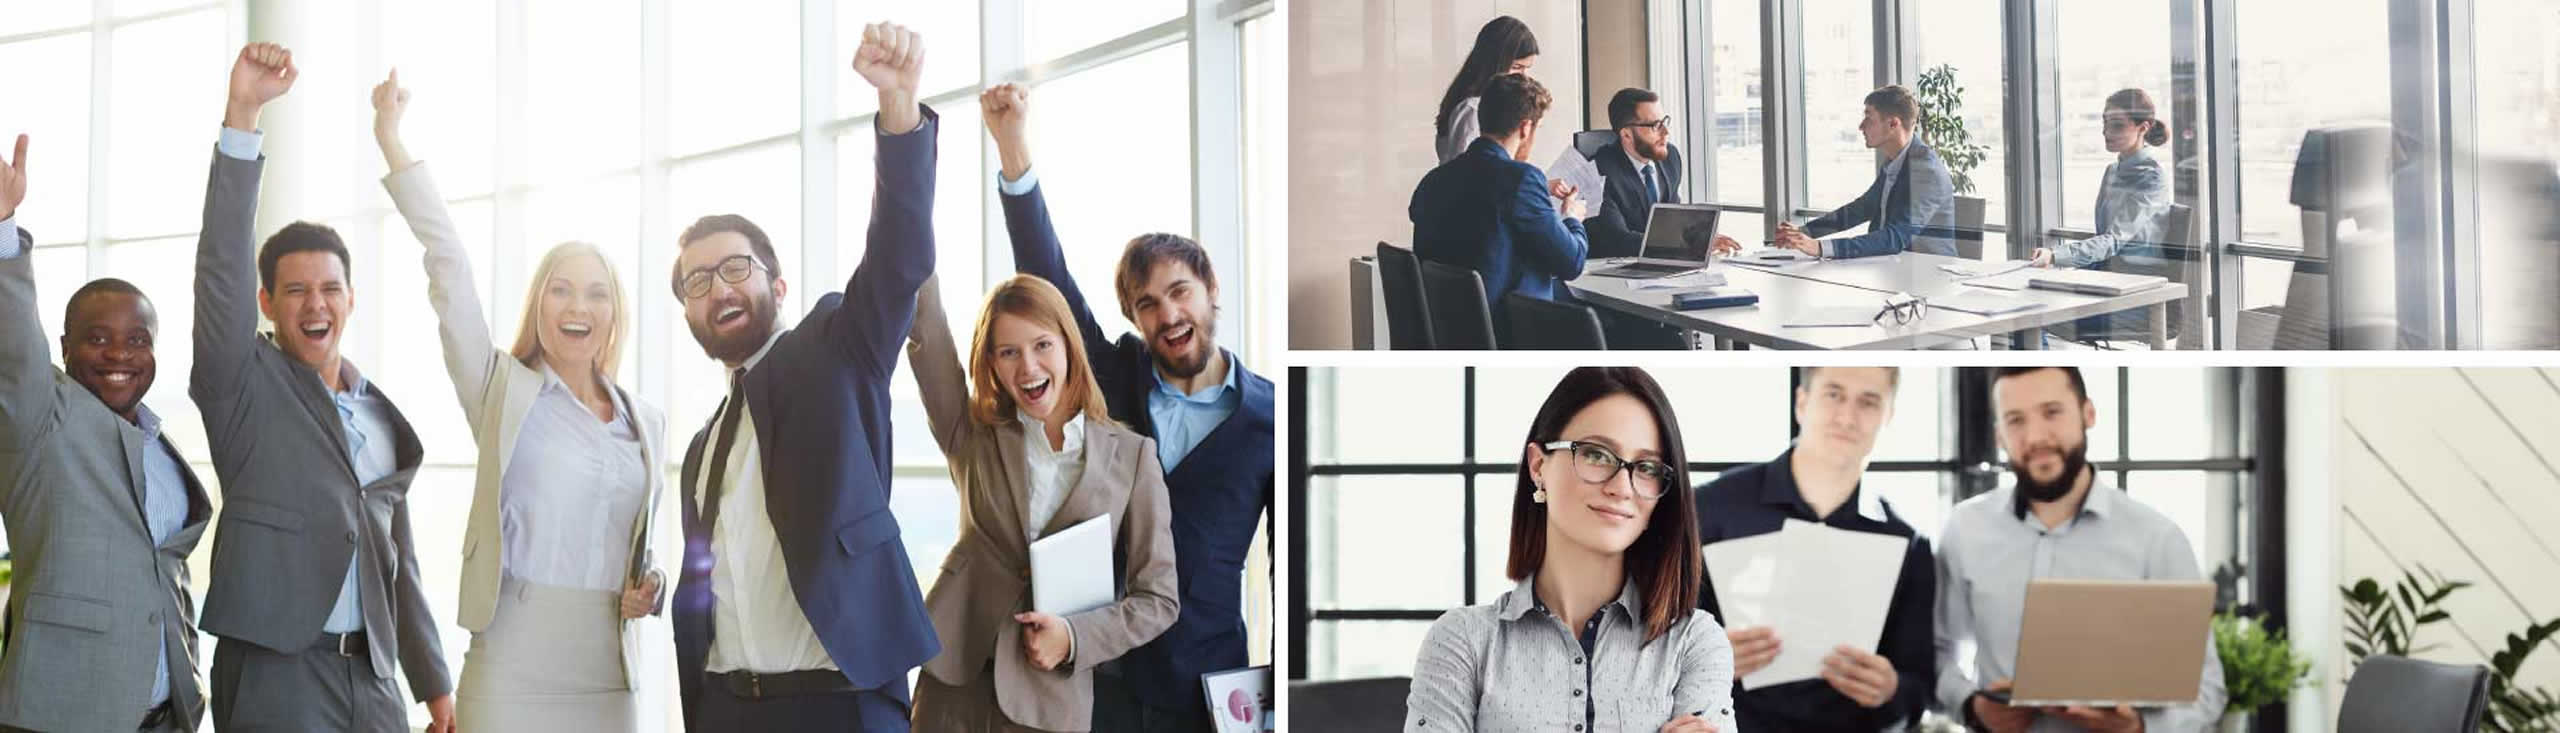 Three images of groups of business professionals in a bright office, discussing projects and working together.